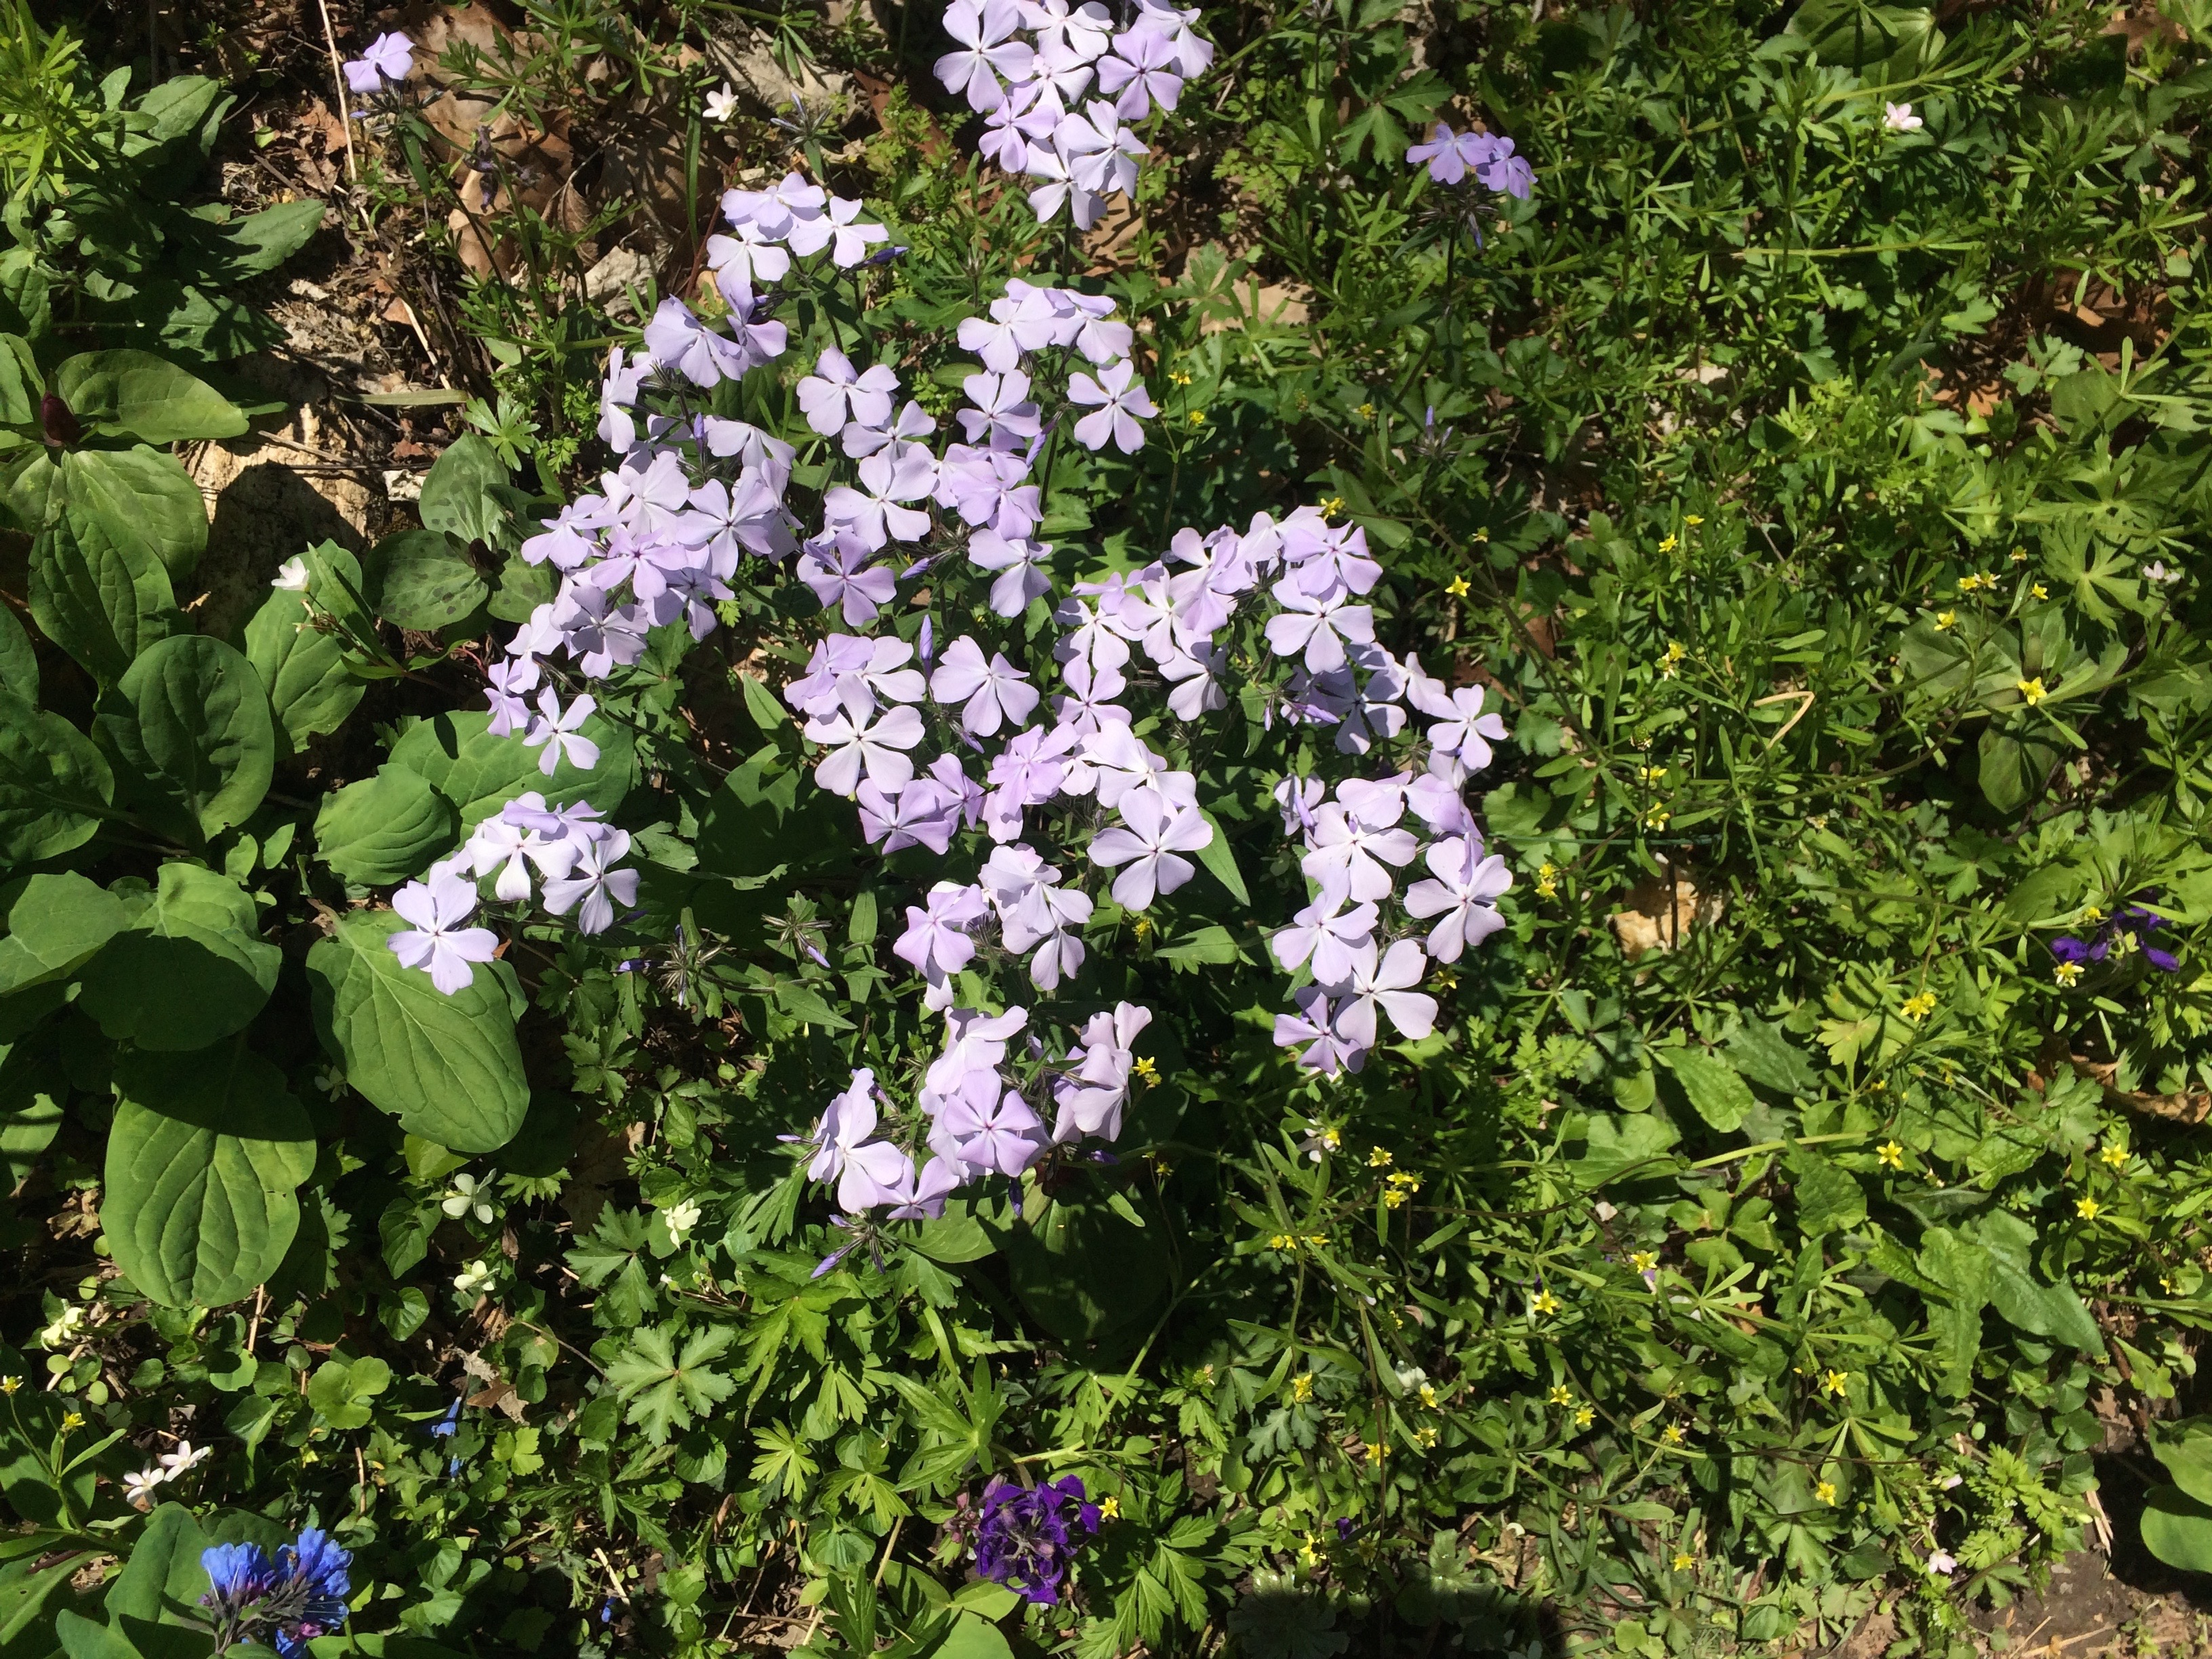 Phlox are a five-petaled spring flower that grow in clusters.